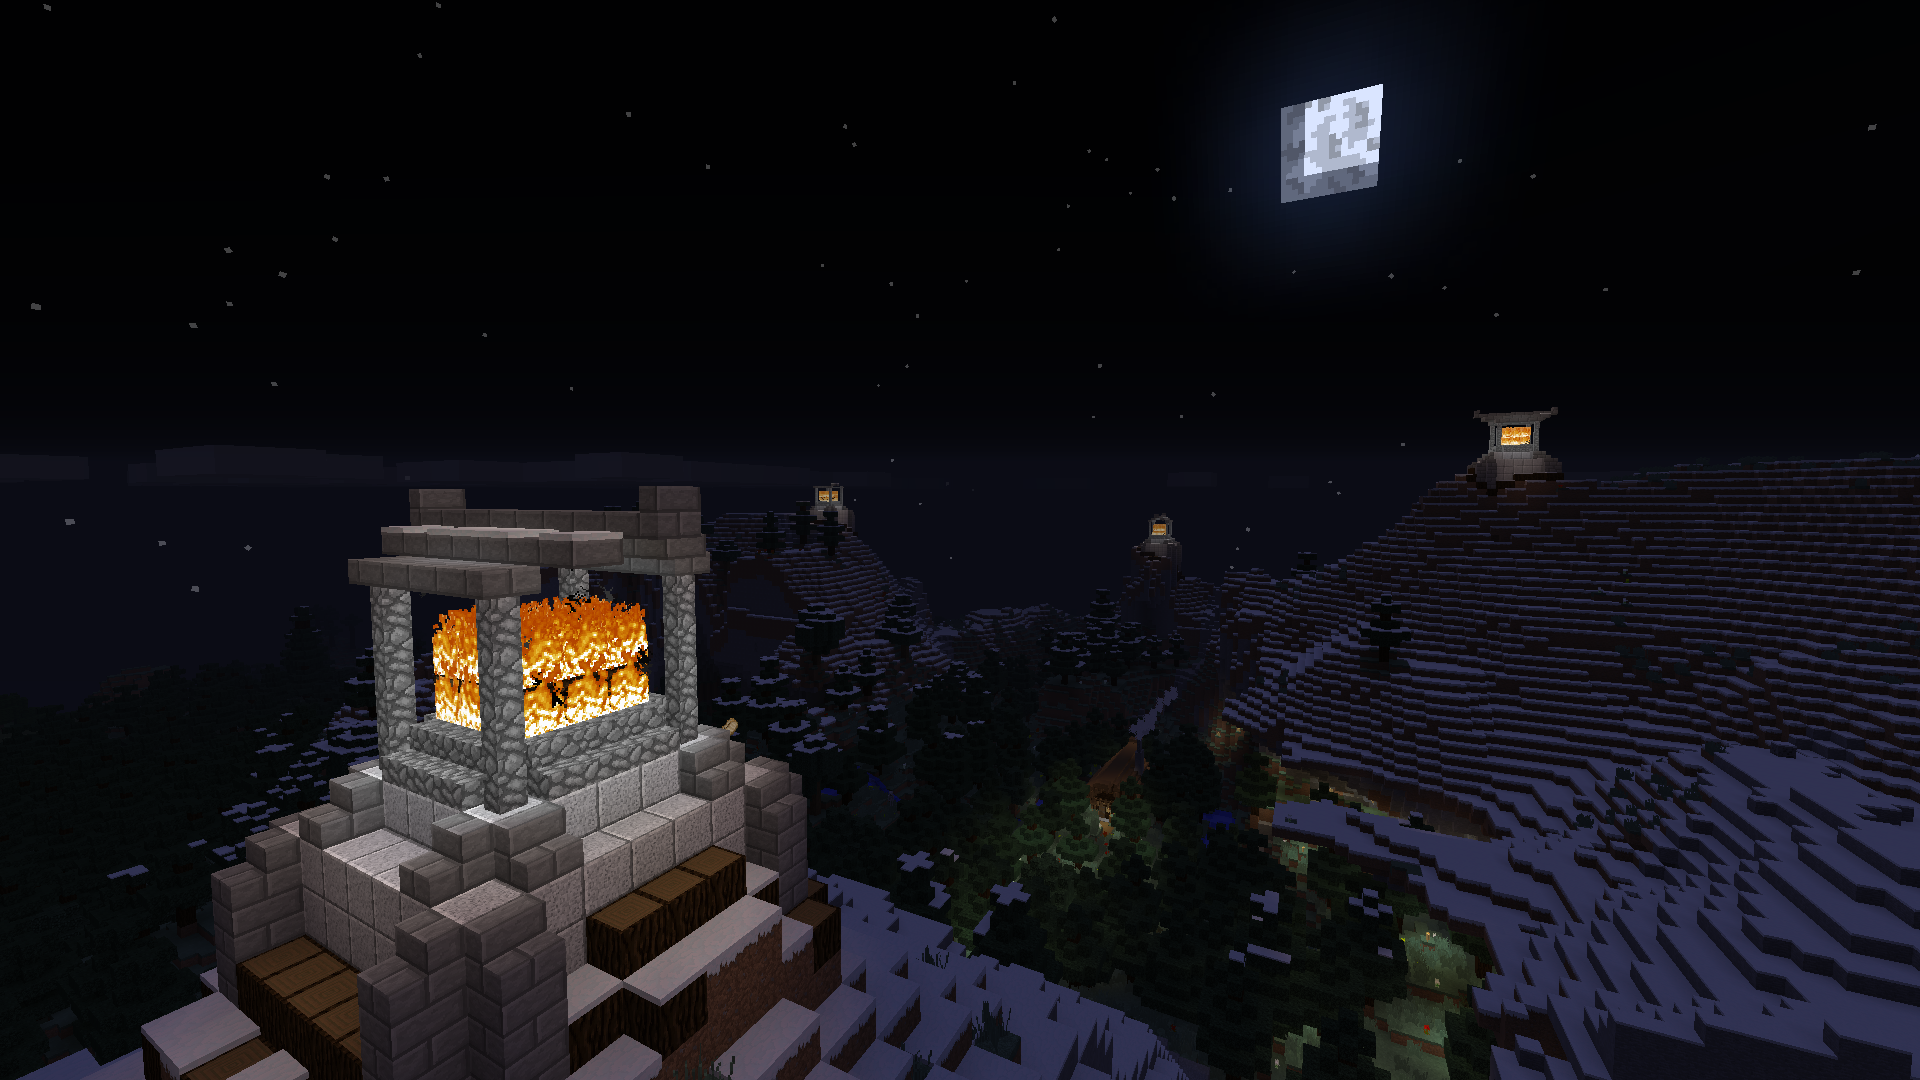 The Beacons Are Lit Gondor Calls For Aid Minecraft Gondor Beacon Beacons Of Gondor